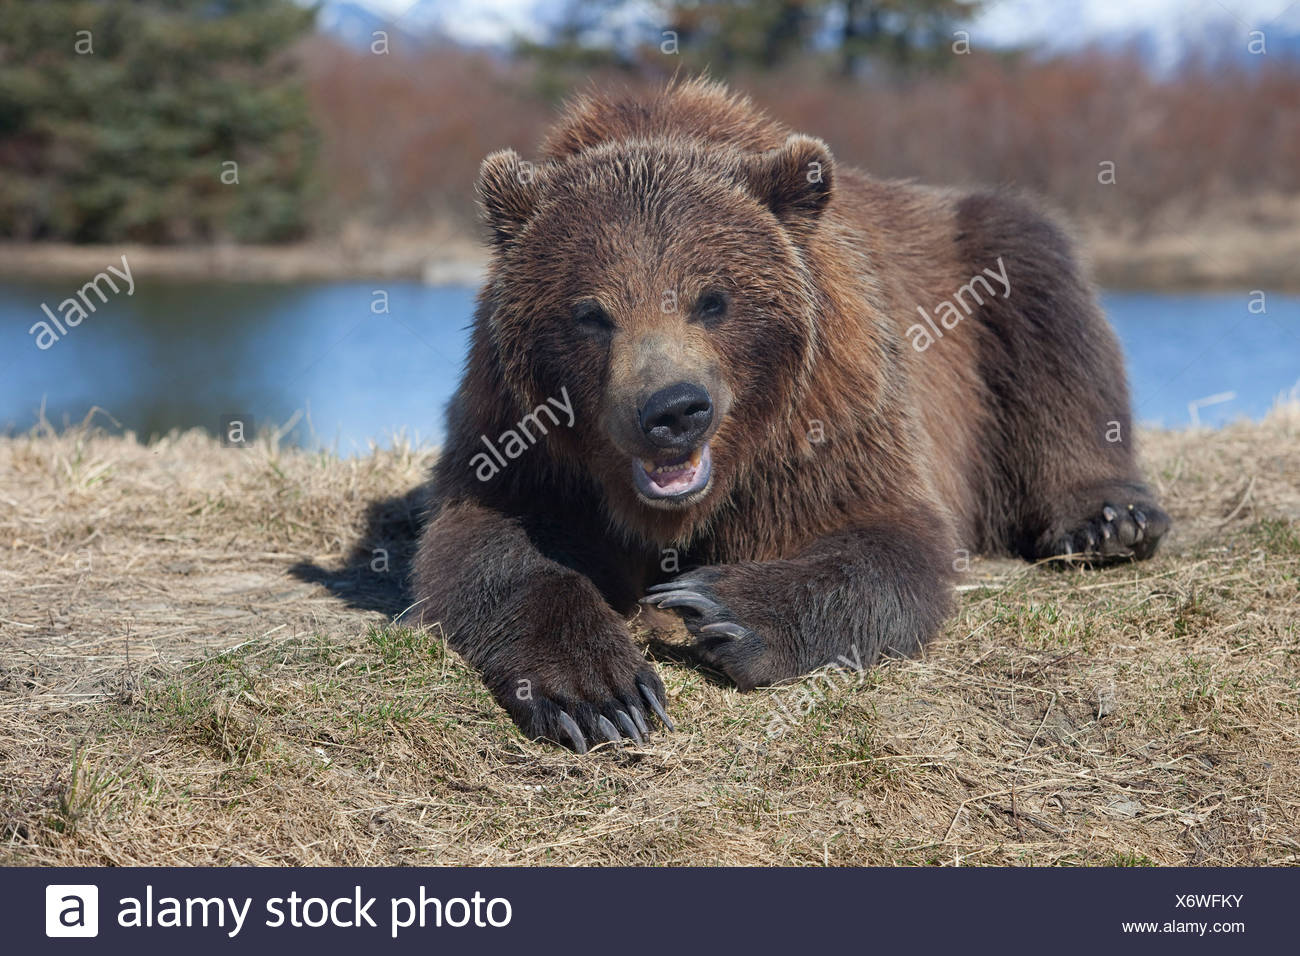 Grizzly bear laying in grass and snarling, Alaska Wildlife Conservation Center, Southcentral, Spring, CAPTIVE - Stock Image